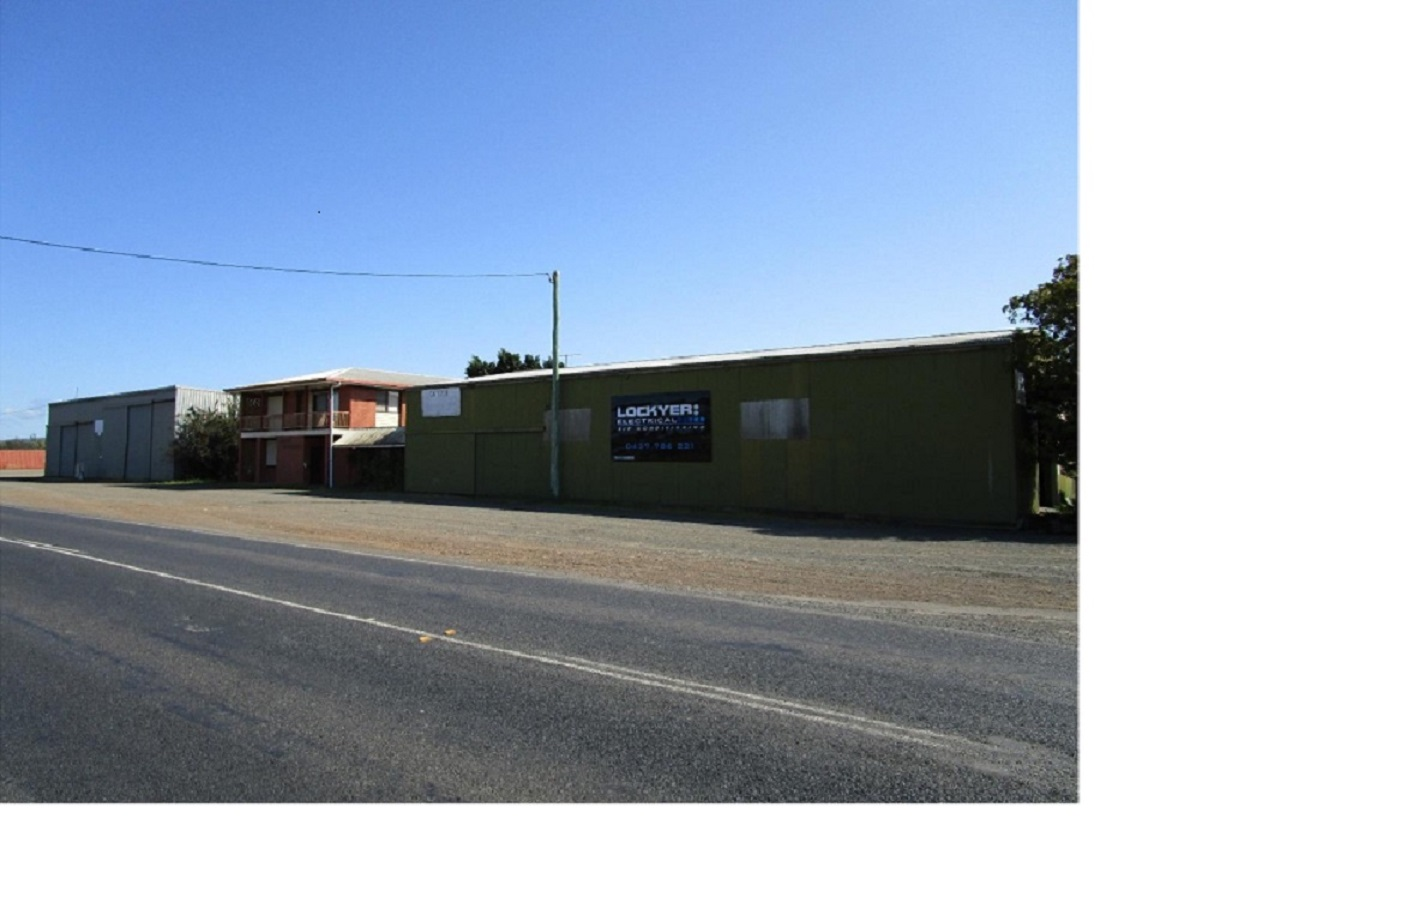 2 X LARGE POWERED SHEDS + 3 BEDROOM HOUSE ON 1.27 Ha. SUITABLE FOR TRUCK DEPOT, COMMERCIAL REPAIR, FABRICATION. $1,800,000